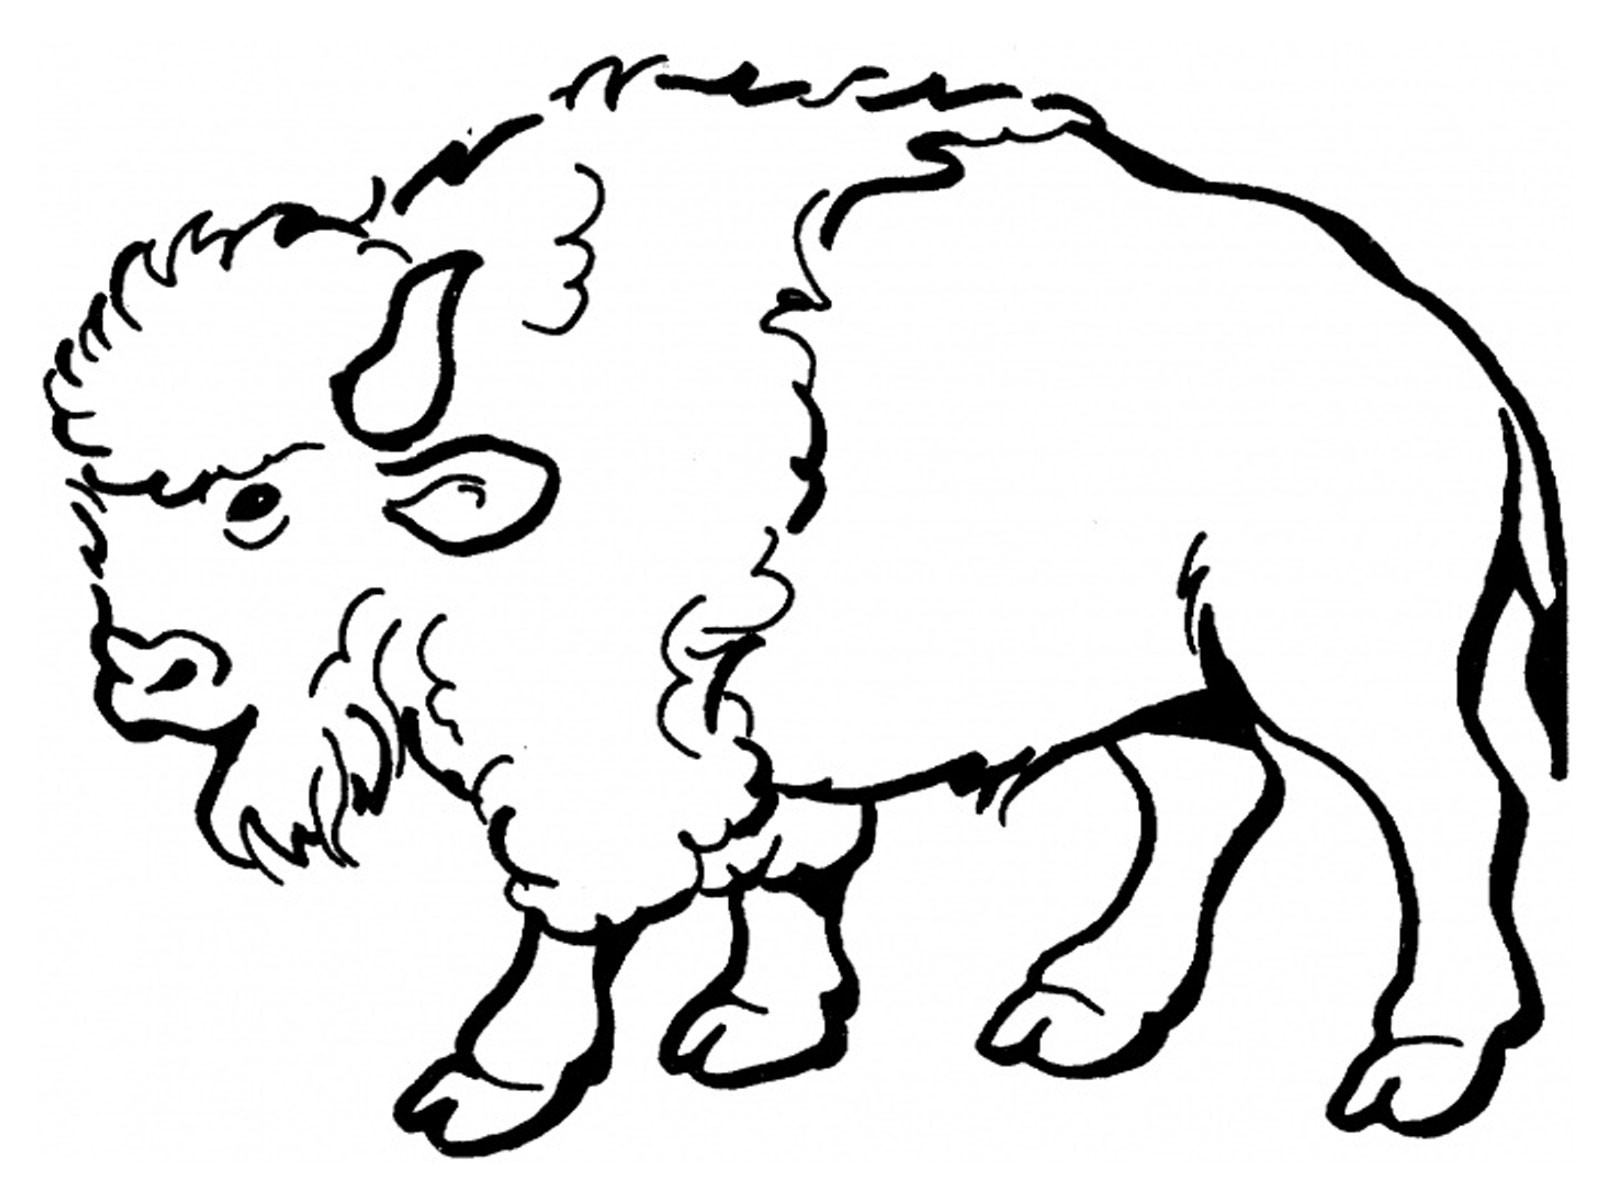 Bison clipart cartoon Best Cartoon Best Images Clip